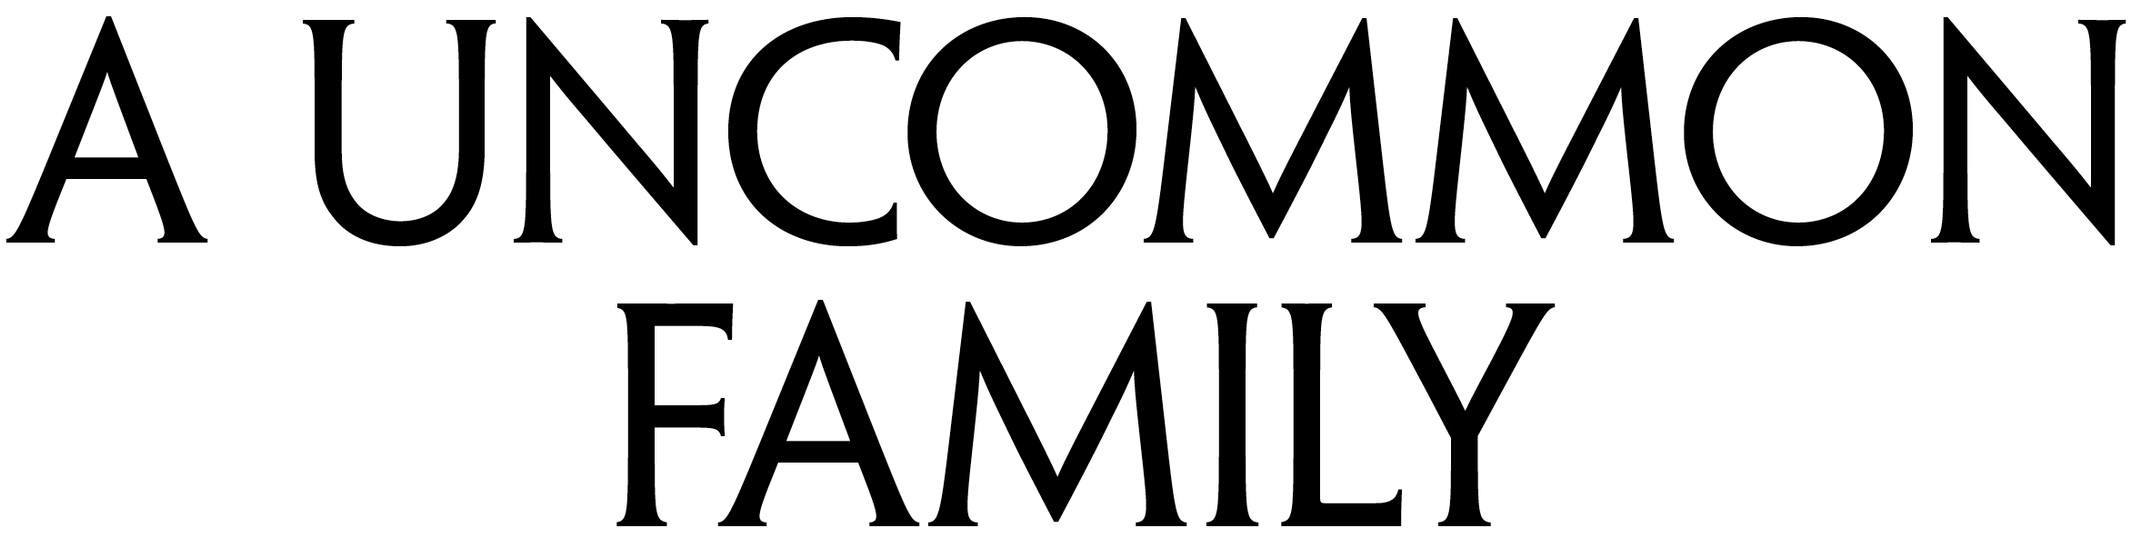 uncommon-family.png